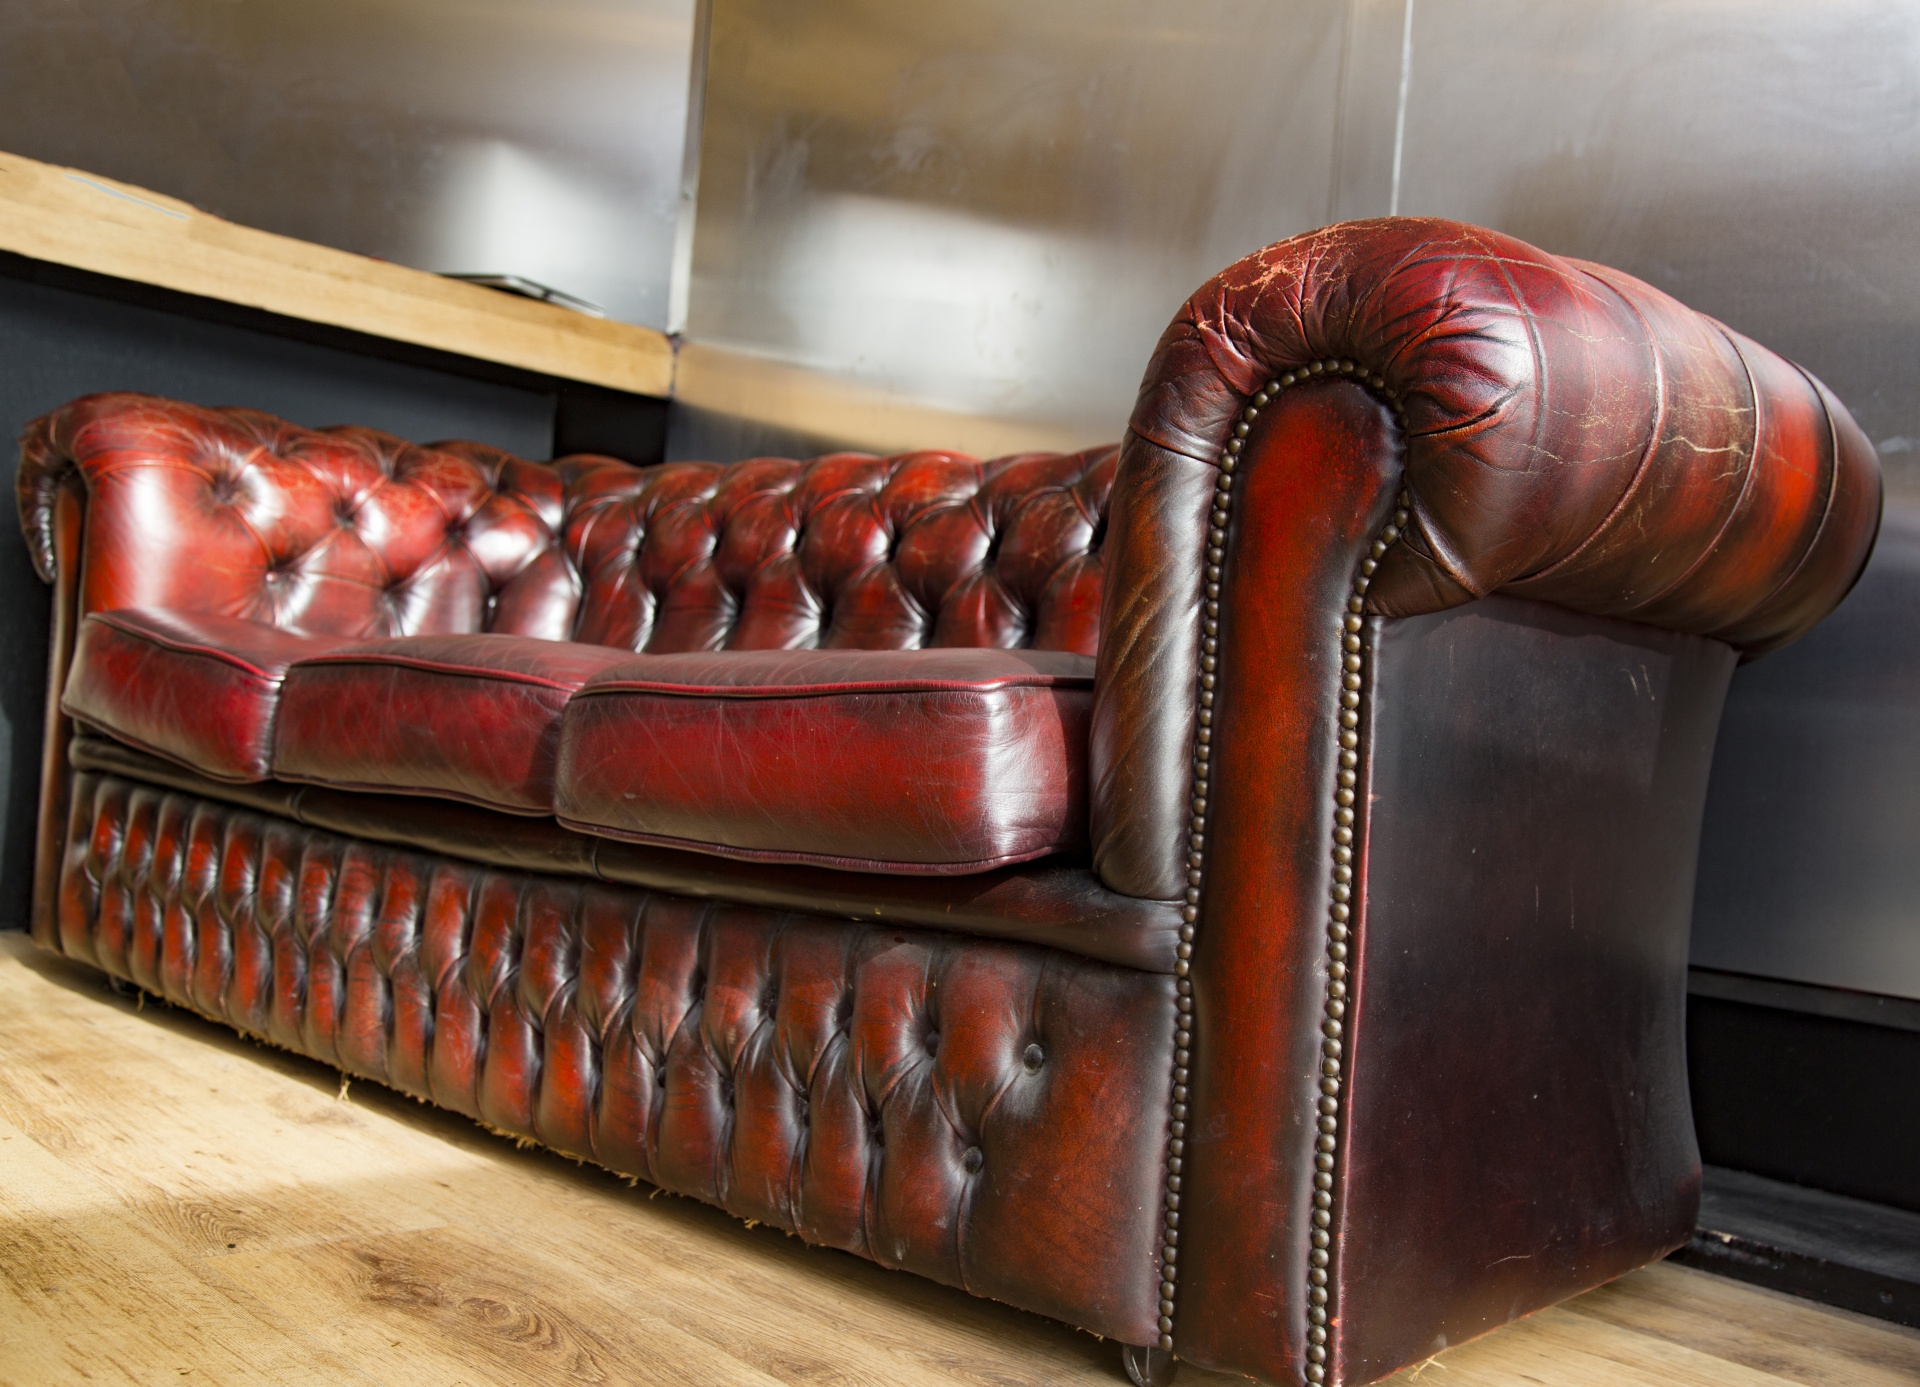 How To Remove Common Stains From Leather Sofas